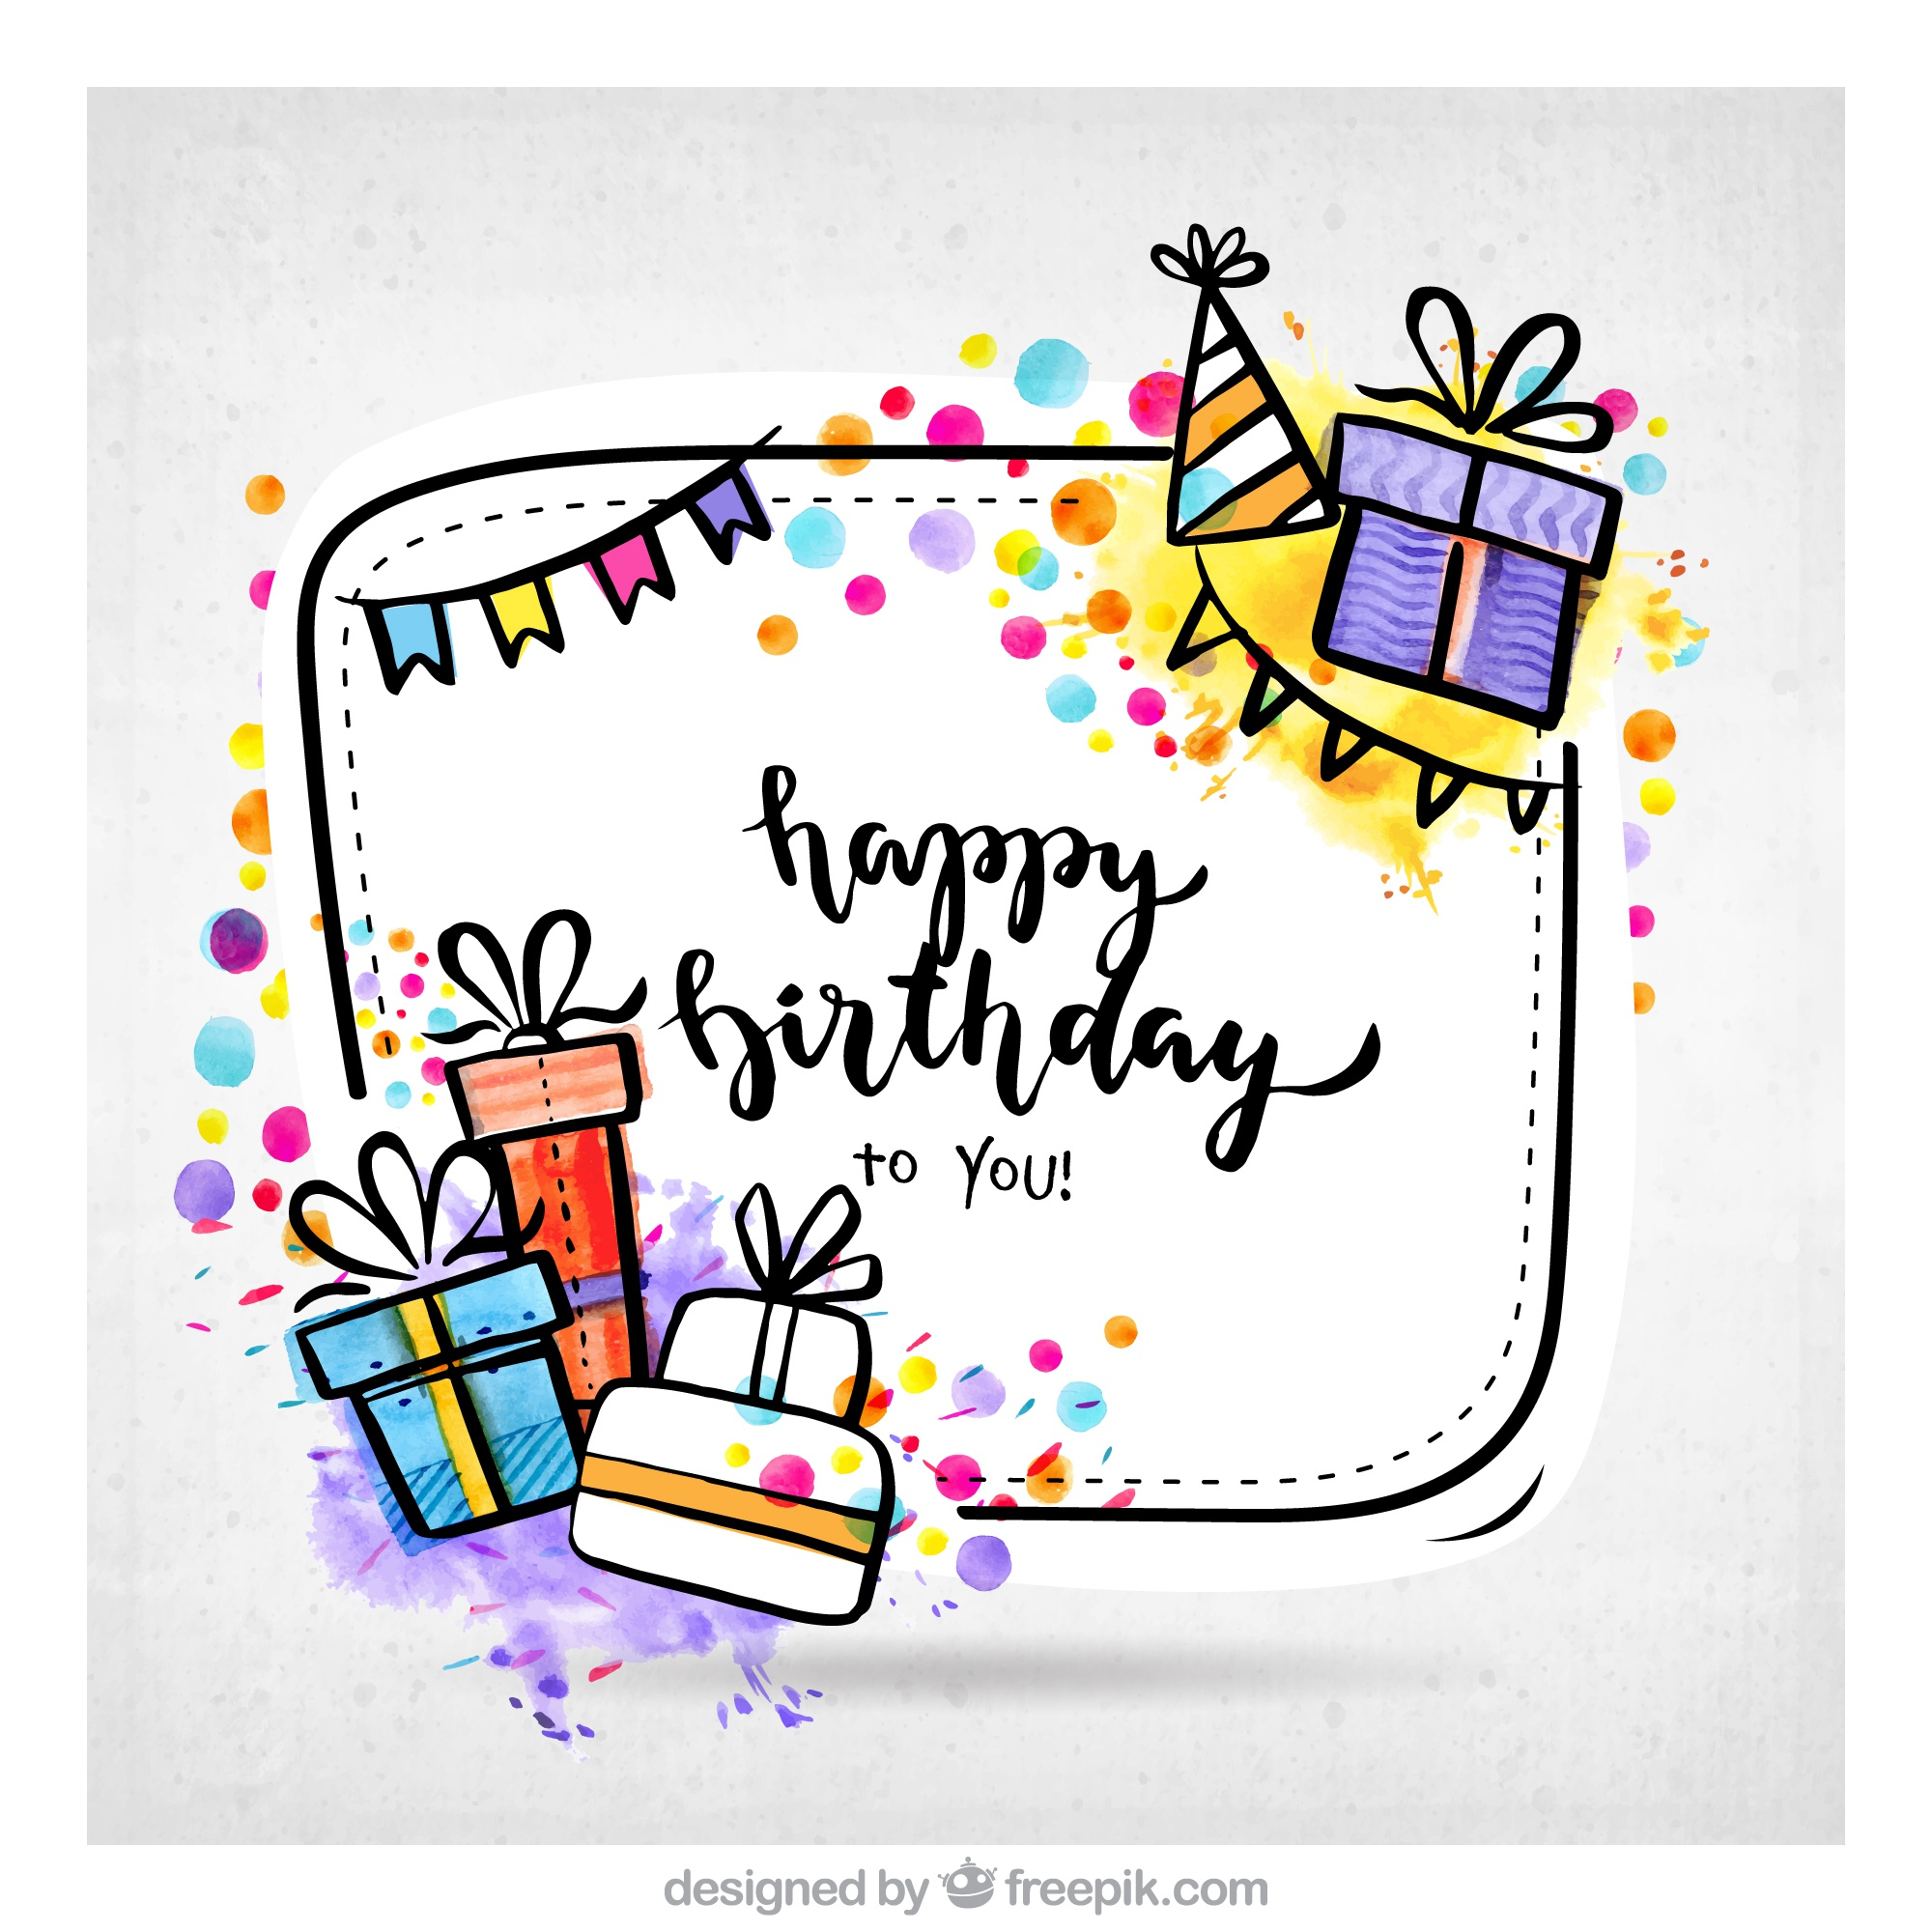 Hand drawn birthday gifts background